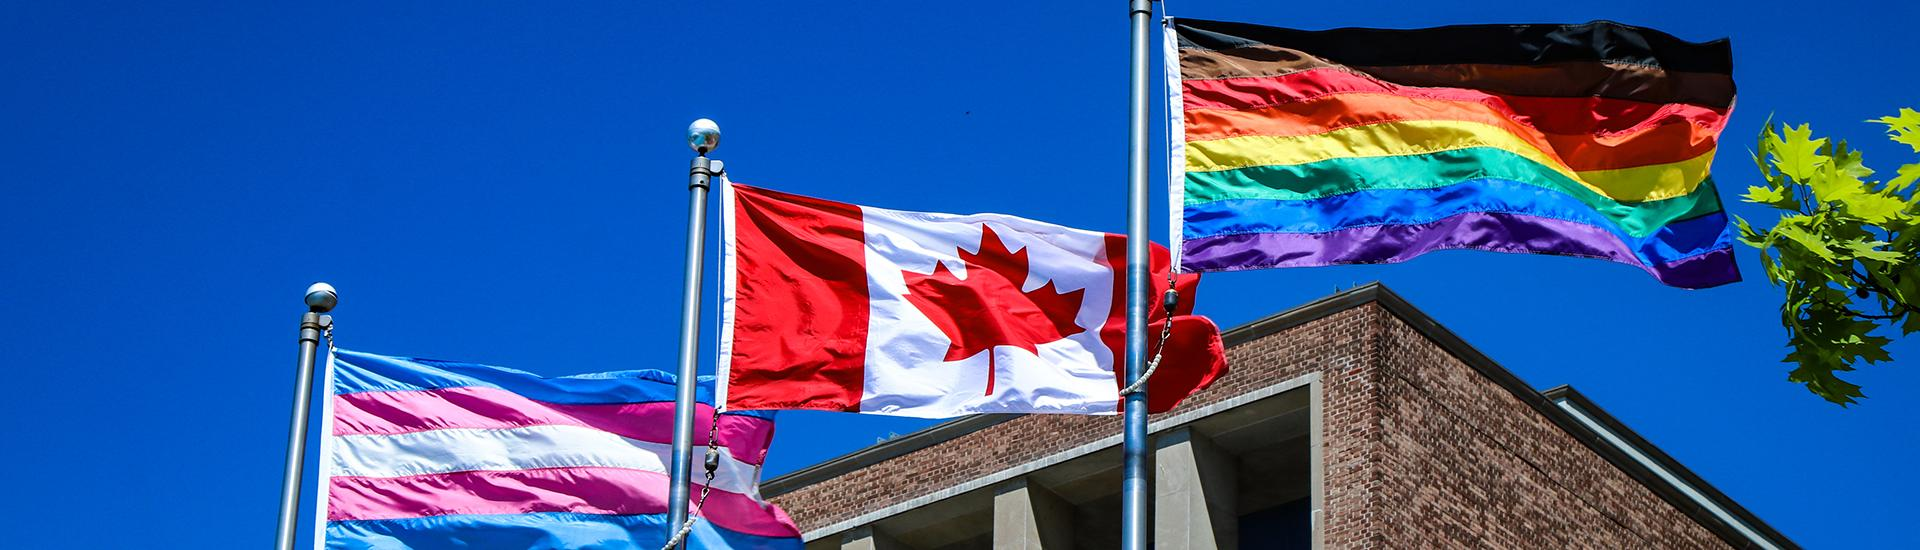 Pride flags flyring next to Canadian flag